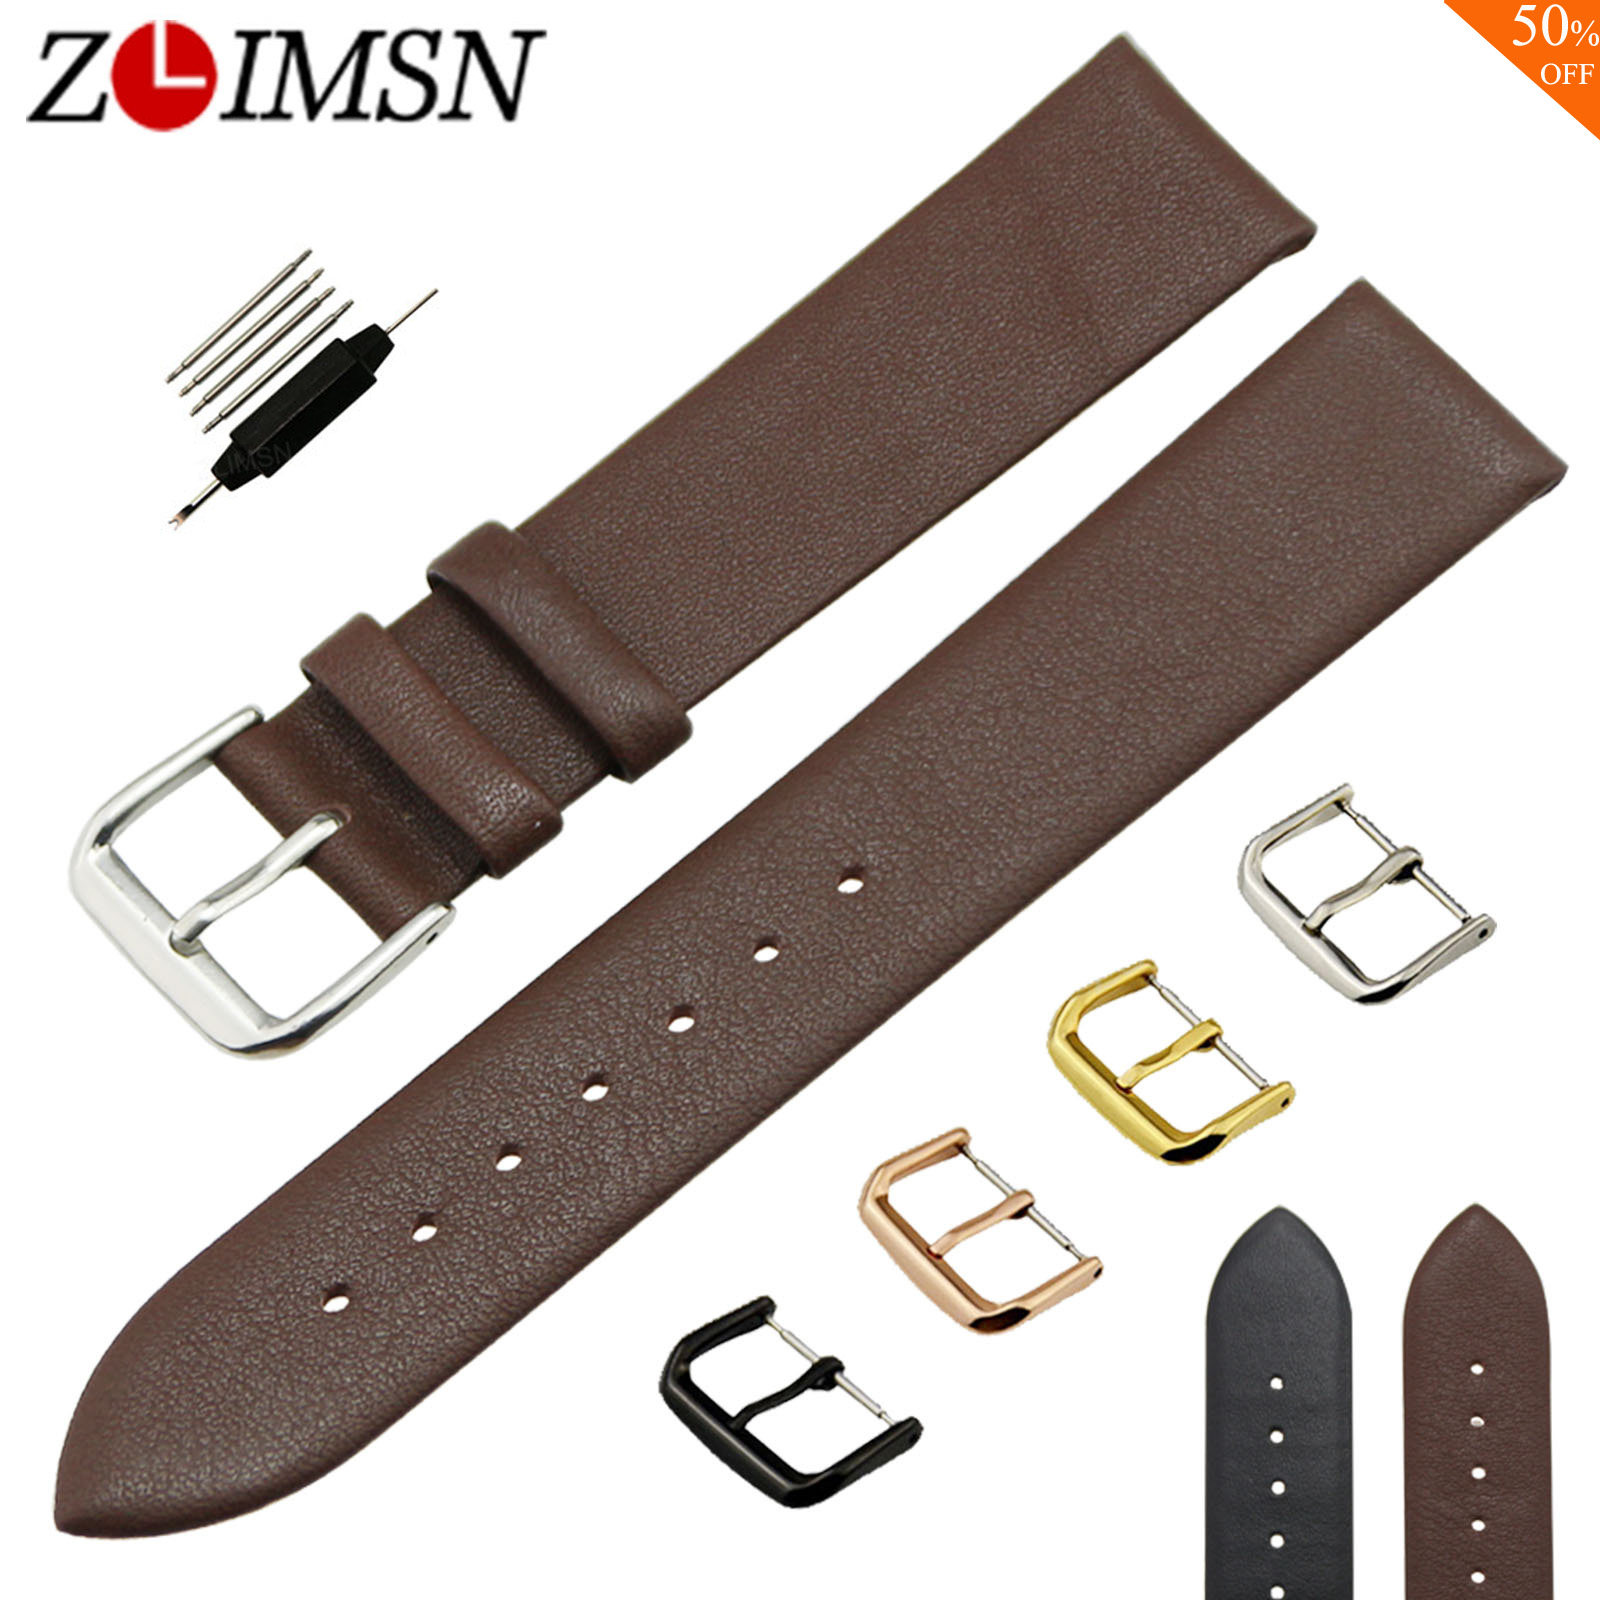 ZLIMSN Brown Genuine Leather Watchbands 18 20 22mm Thin Smooth Watch Strap Belt for Ladies Men's Watches Stainless Steel Buckle цена и фото